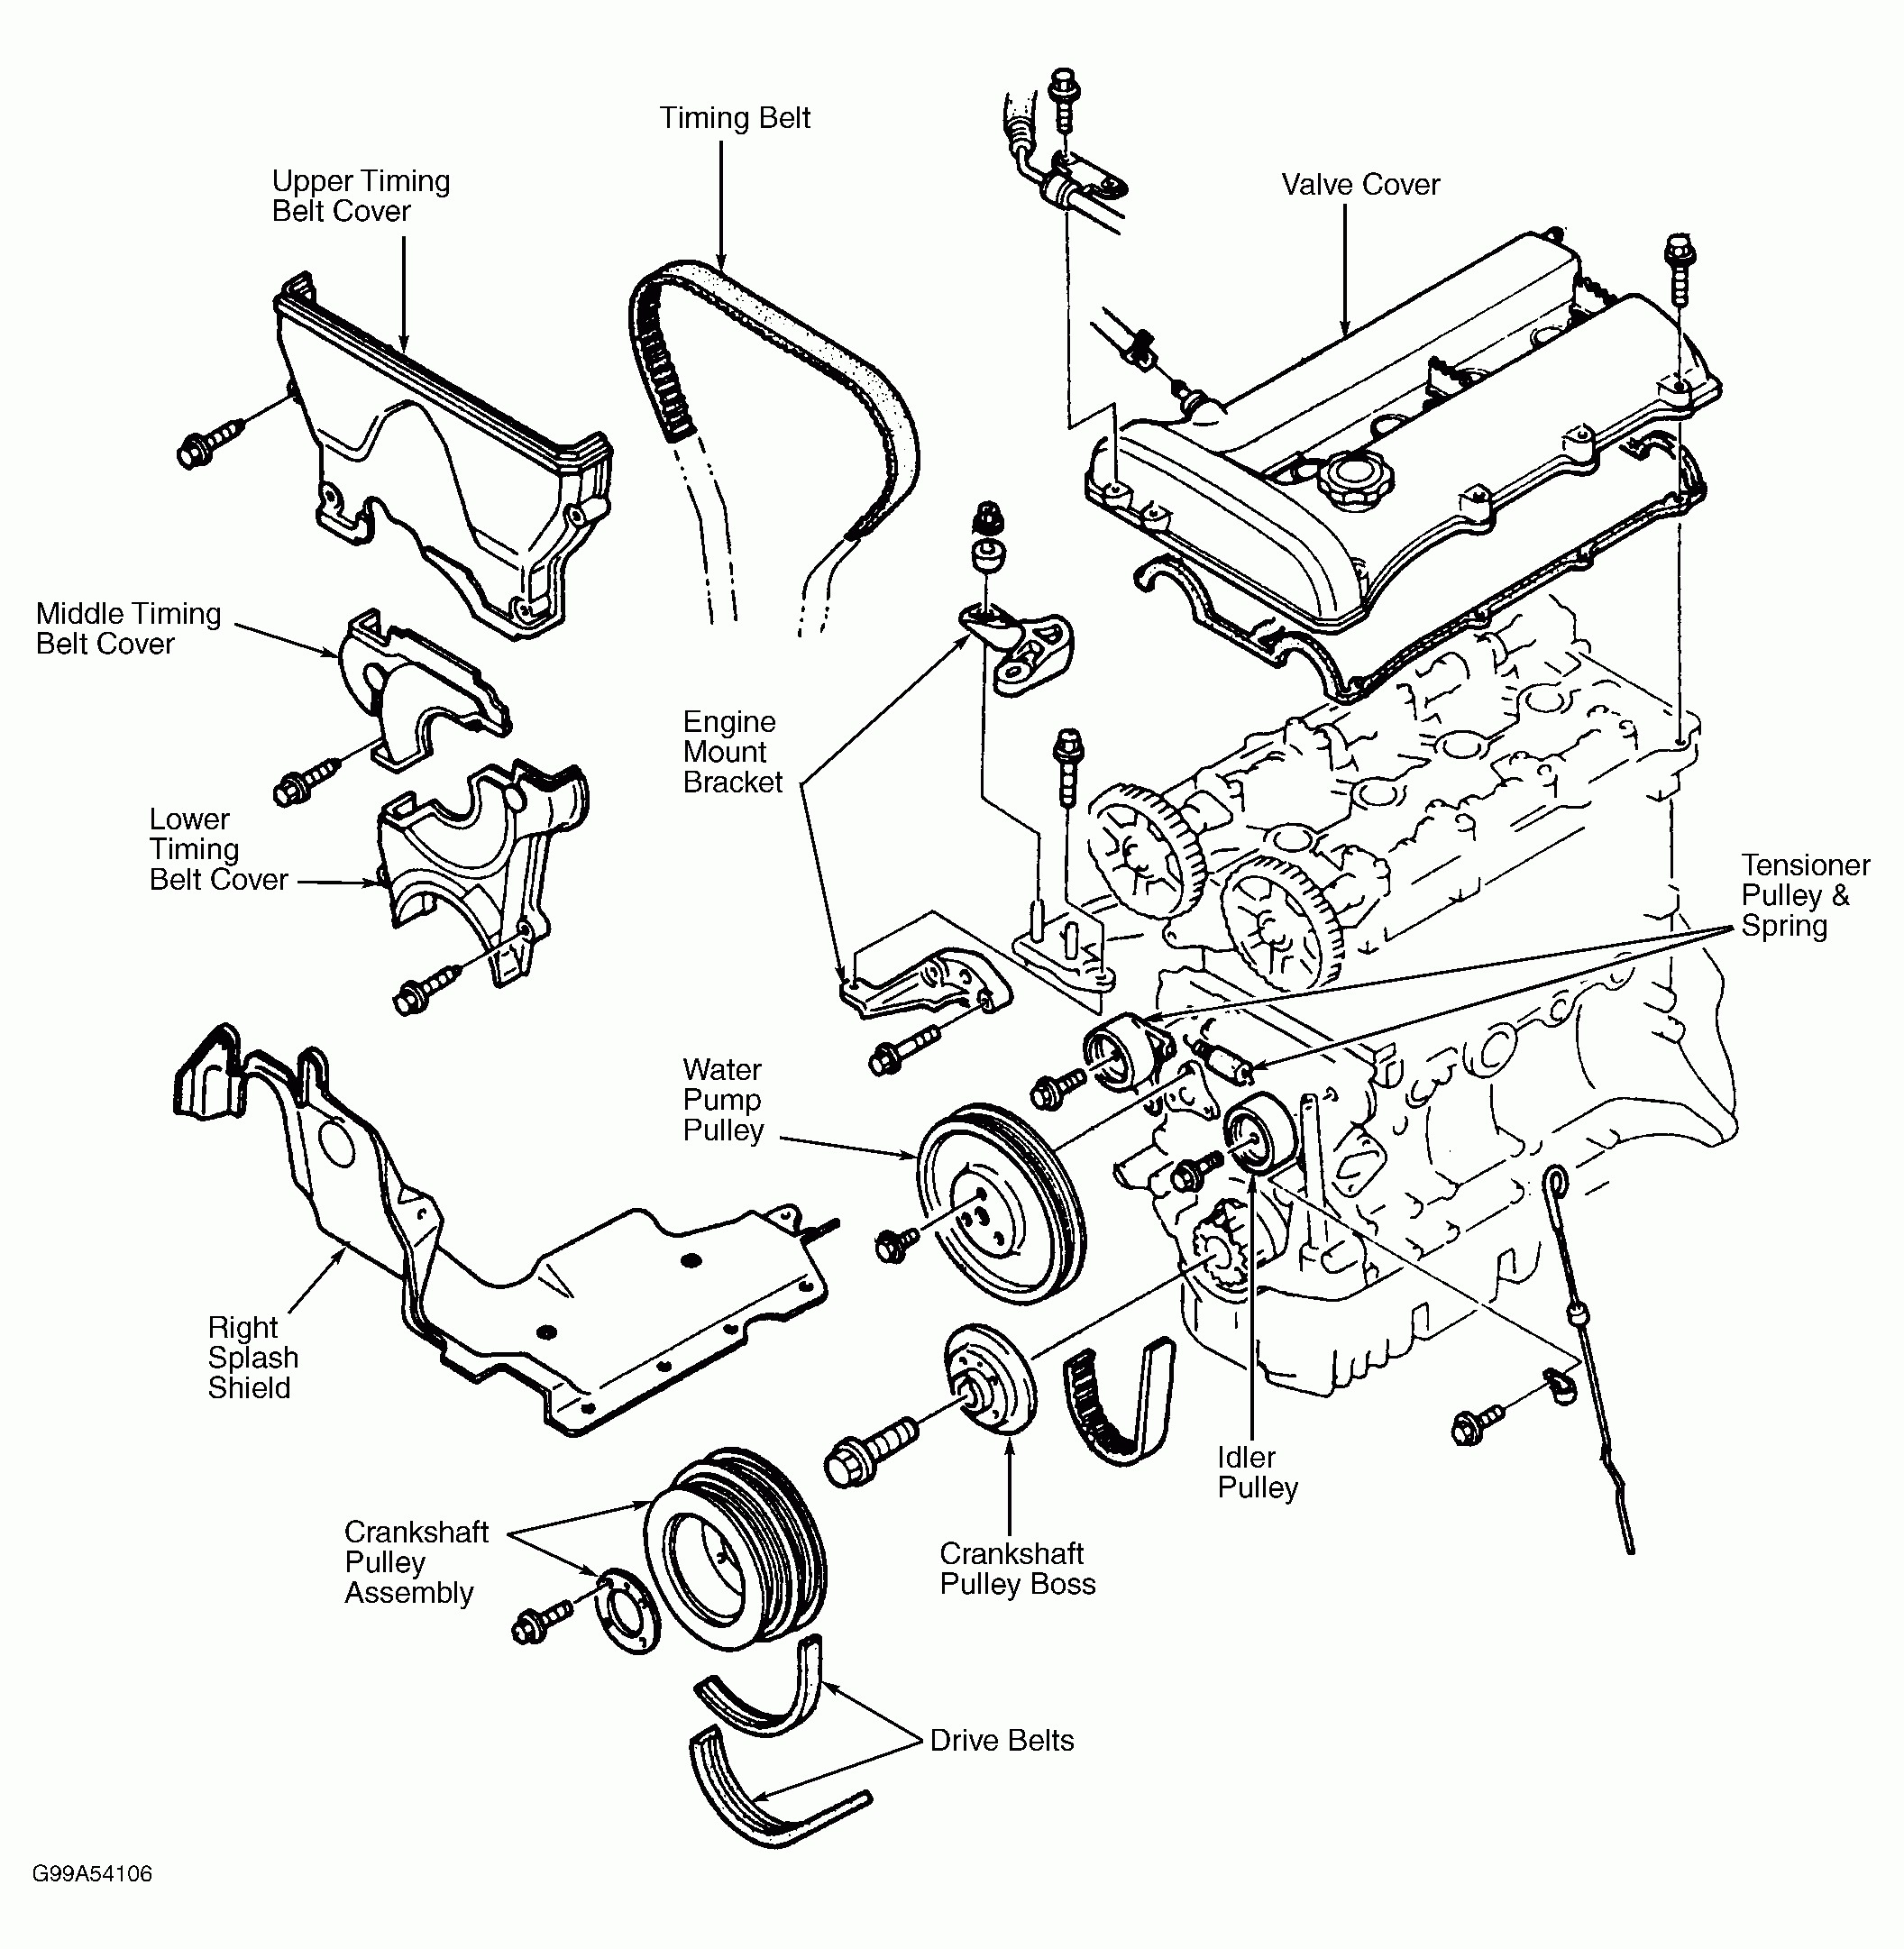 mazda protege 1 6 engine diagram - wiring diagram page skip-fix -  skip-fix.granballodicomo.it  granballodicomo.it